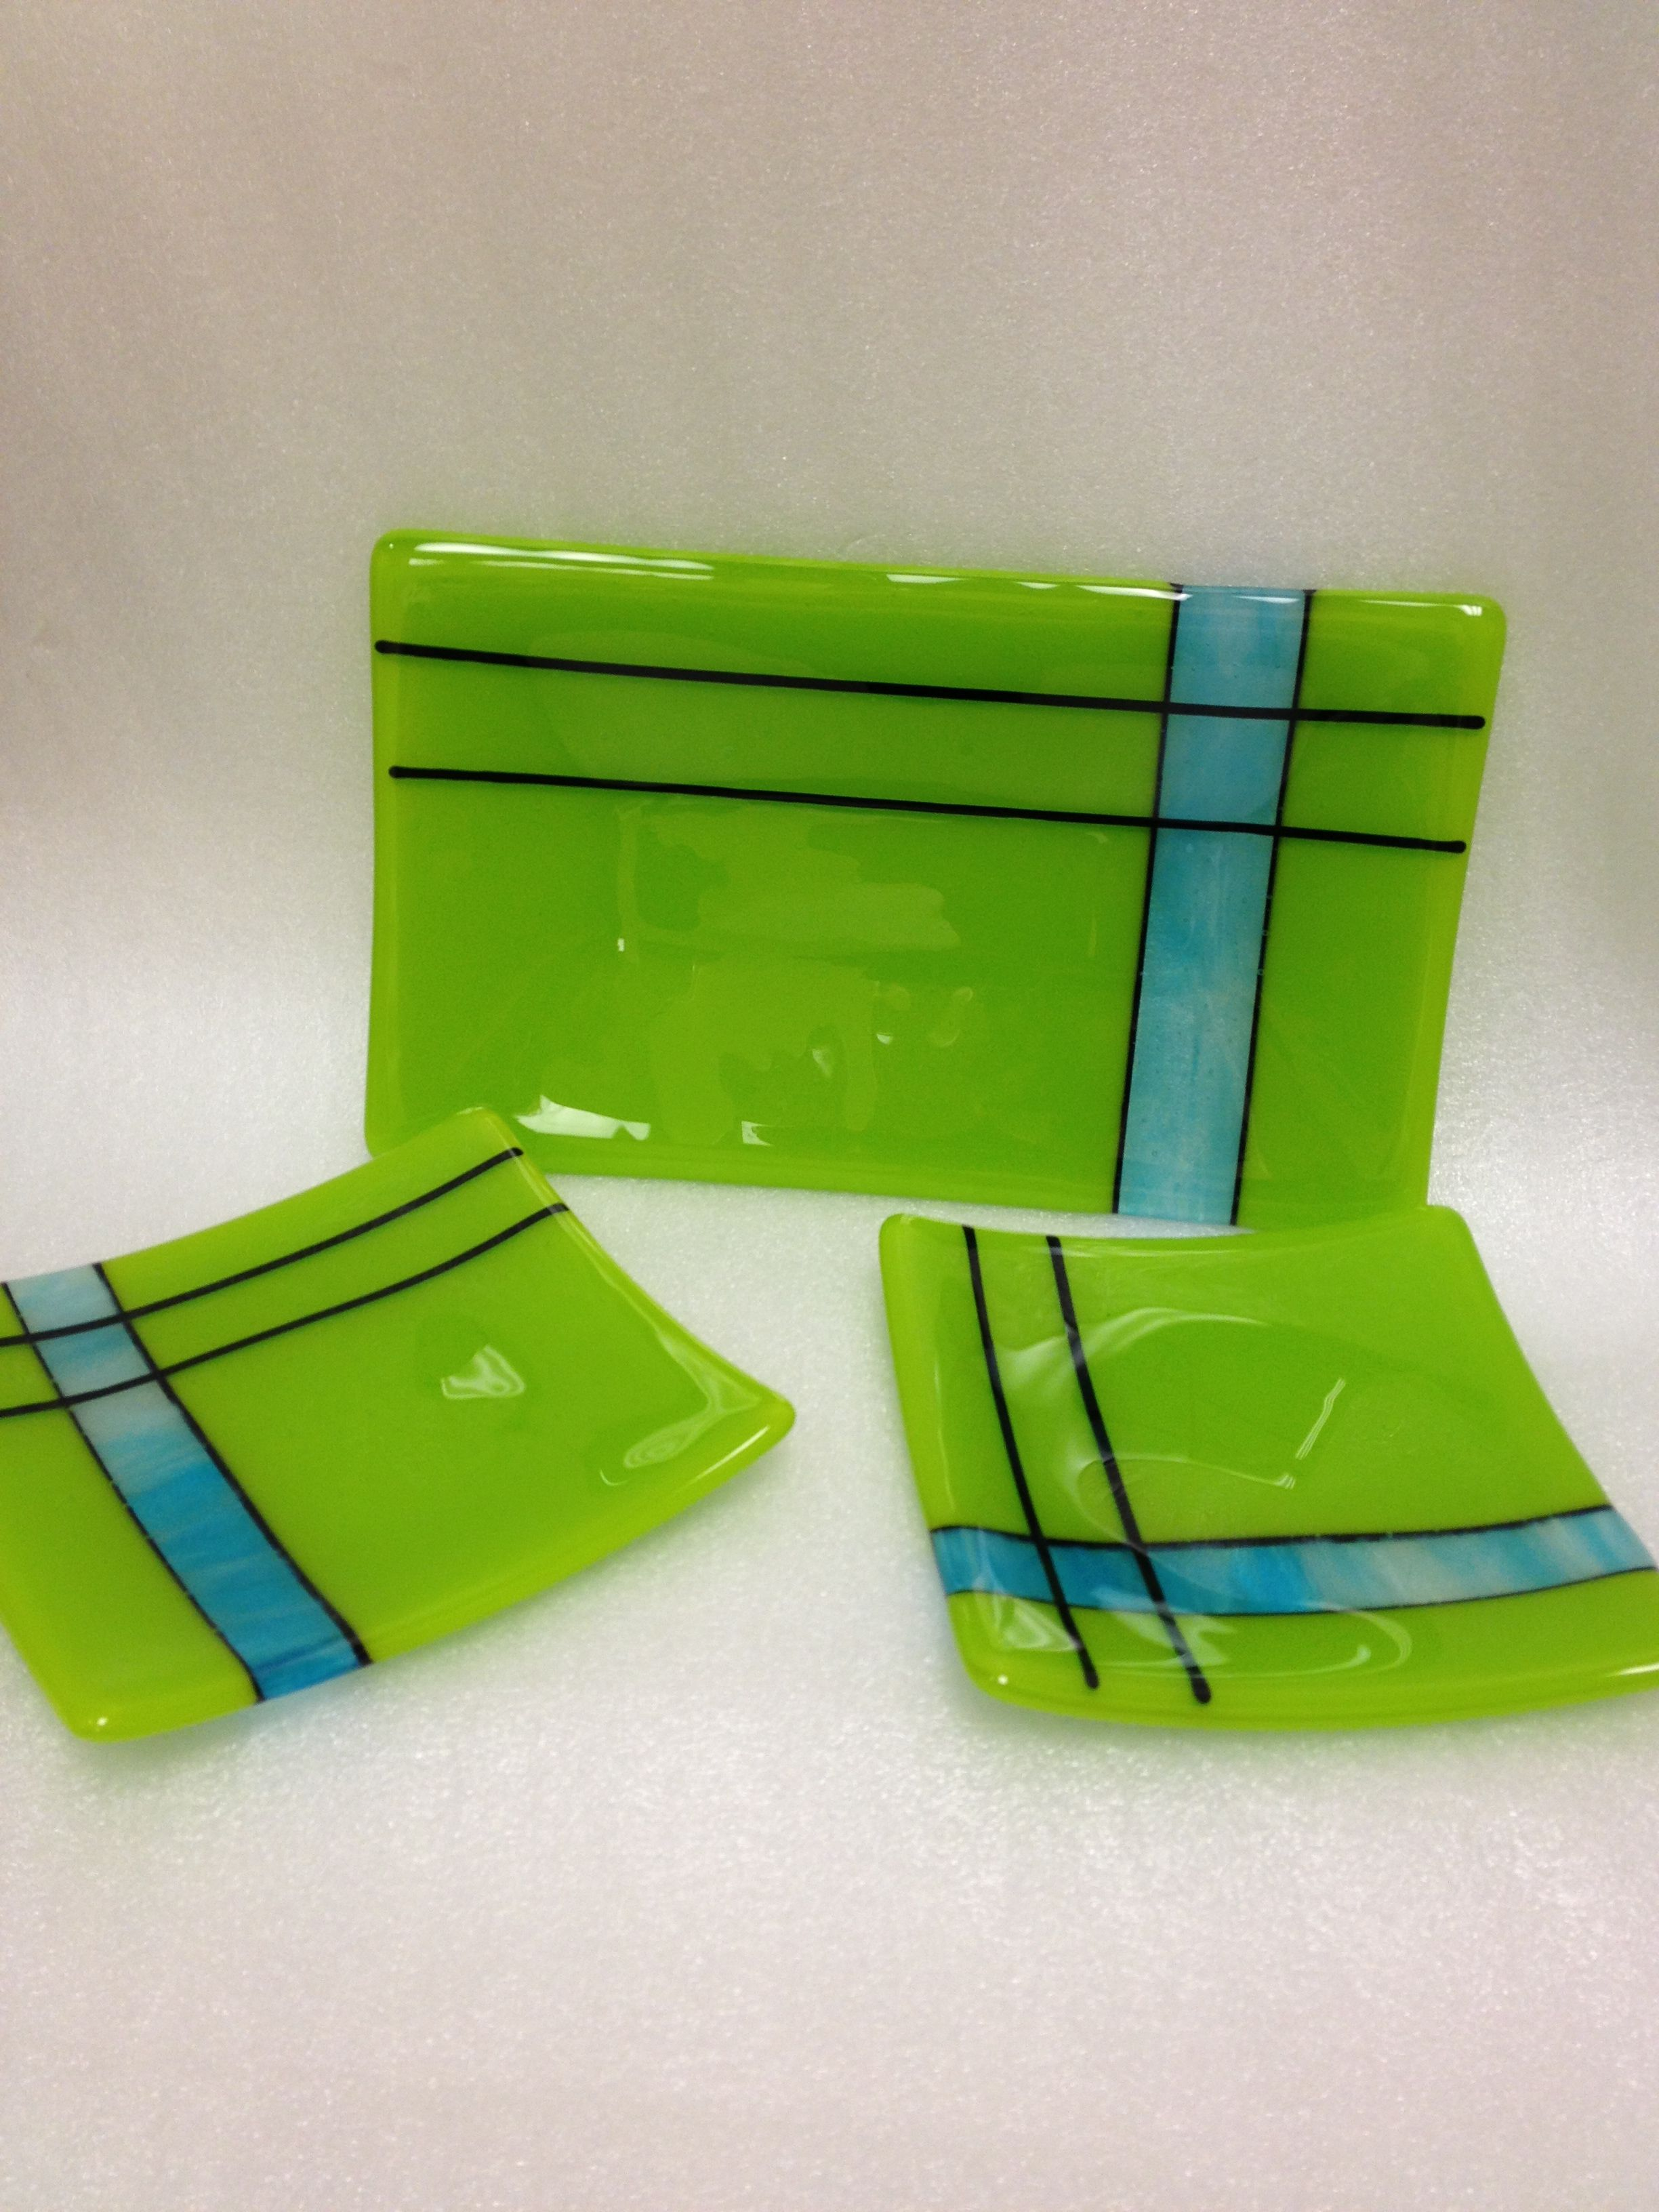 Fused glass sushi set fused glass glass fusing projects